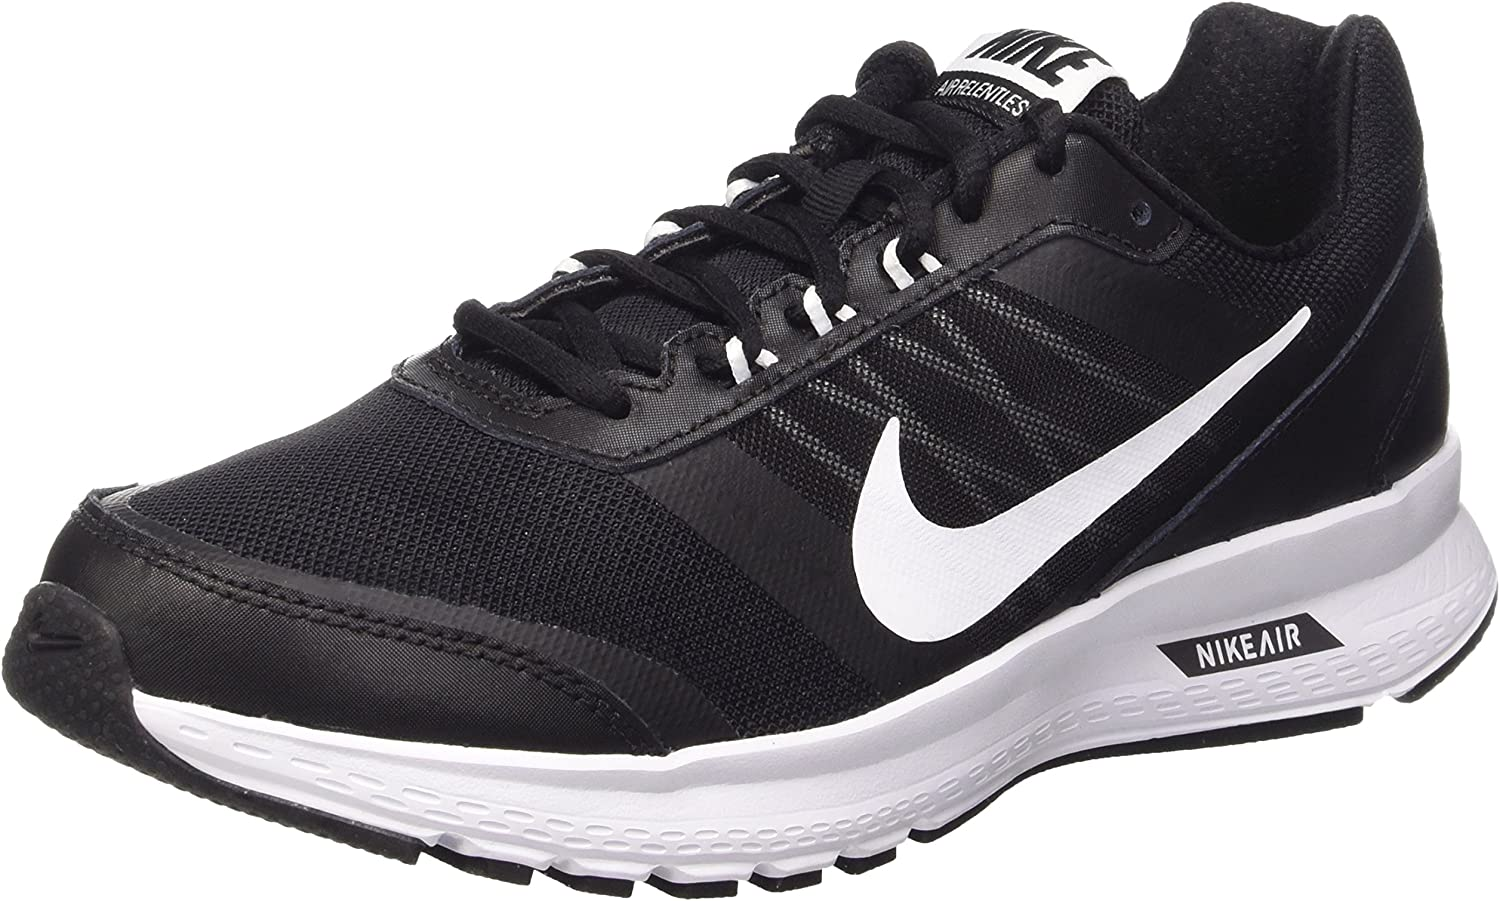 Air Relentless 5 Blk Wht M